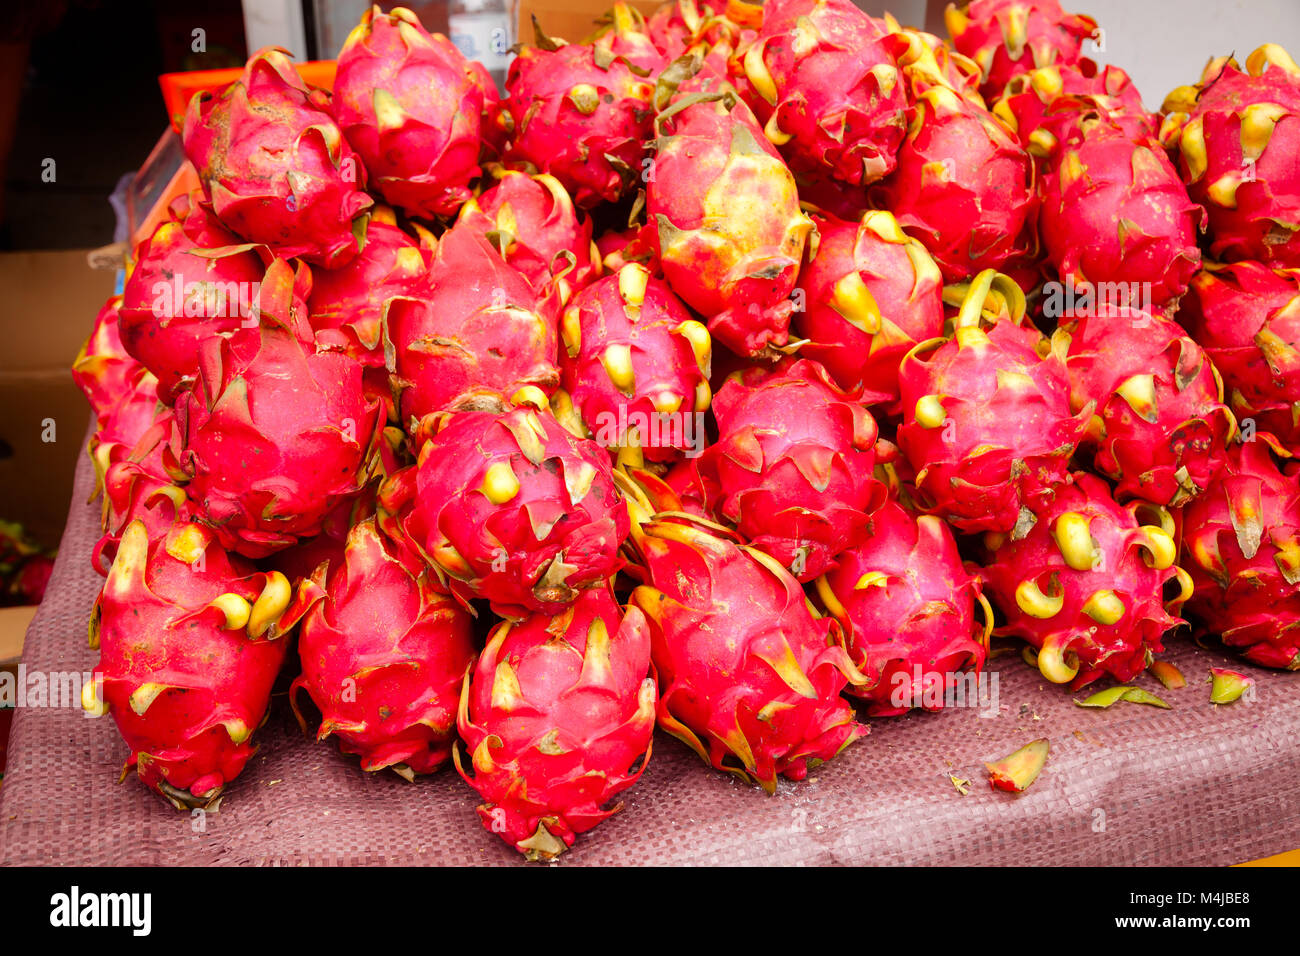 Freshly harvested pitaya (pitahaya or dragon fruit) cactus fruit on a street stall for sale at Urumchi, Xinjiang - Stock Image